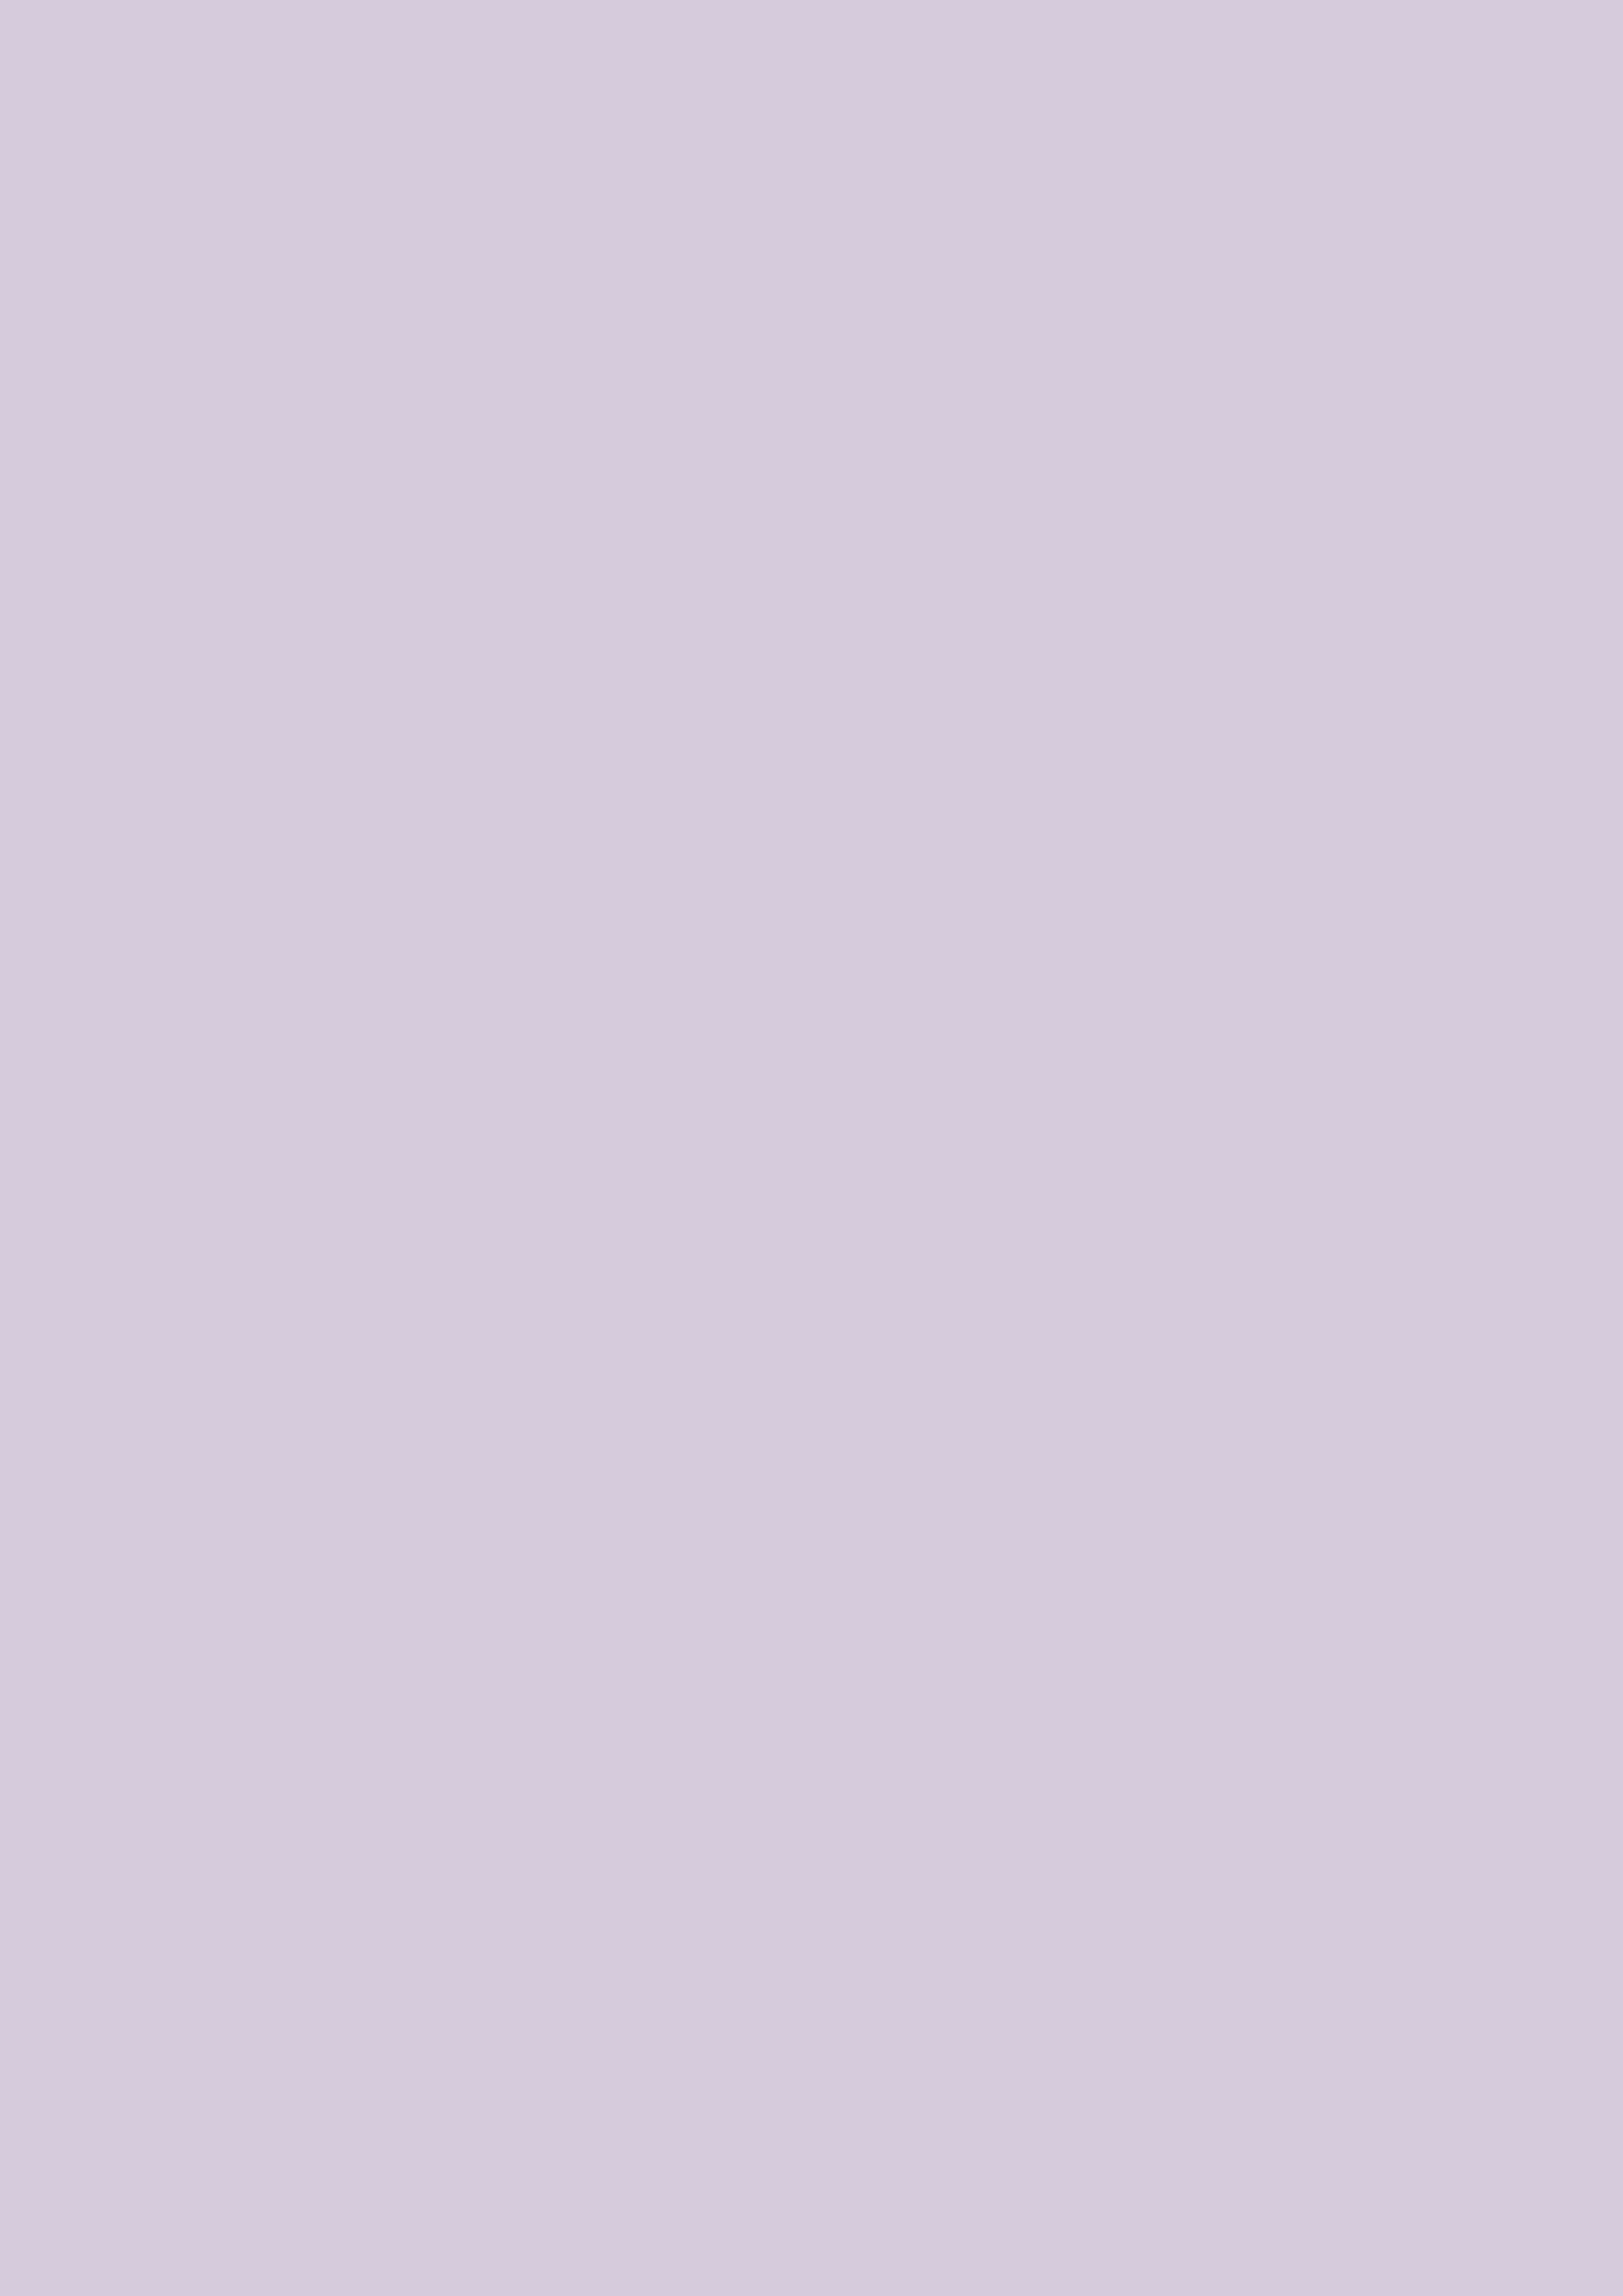 2480x3508 Languid Lavender Solid Color Background